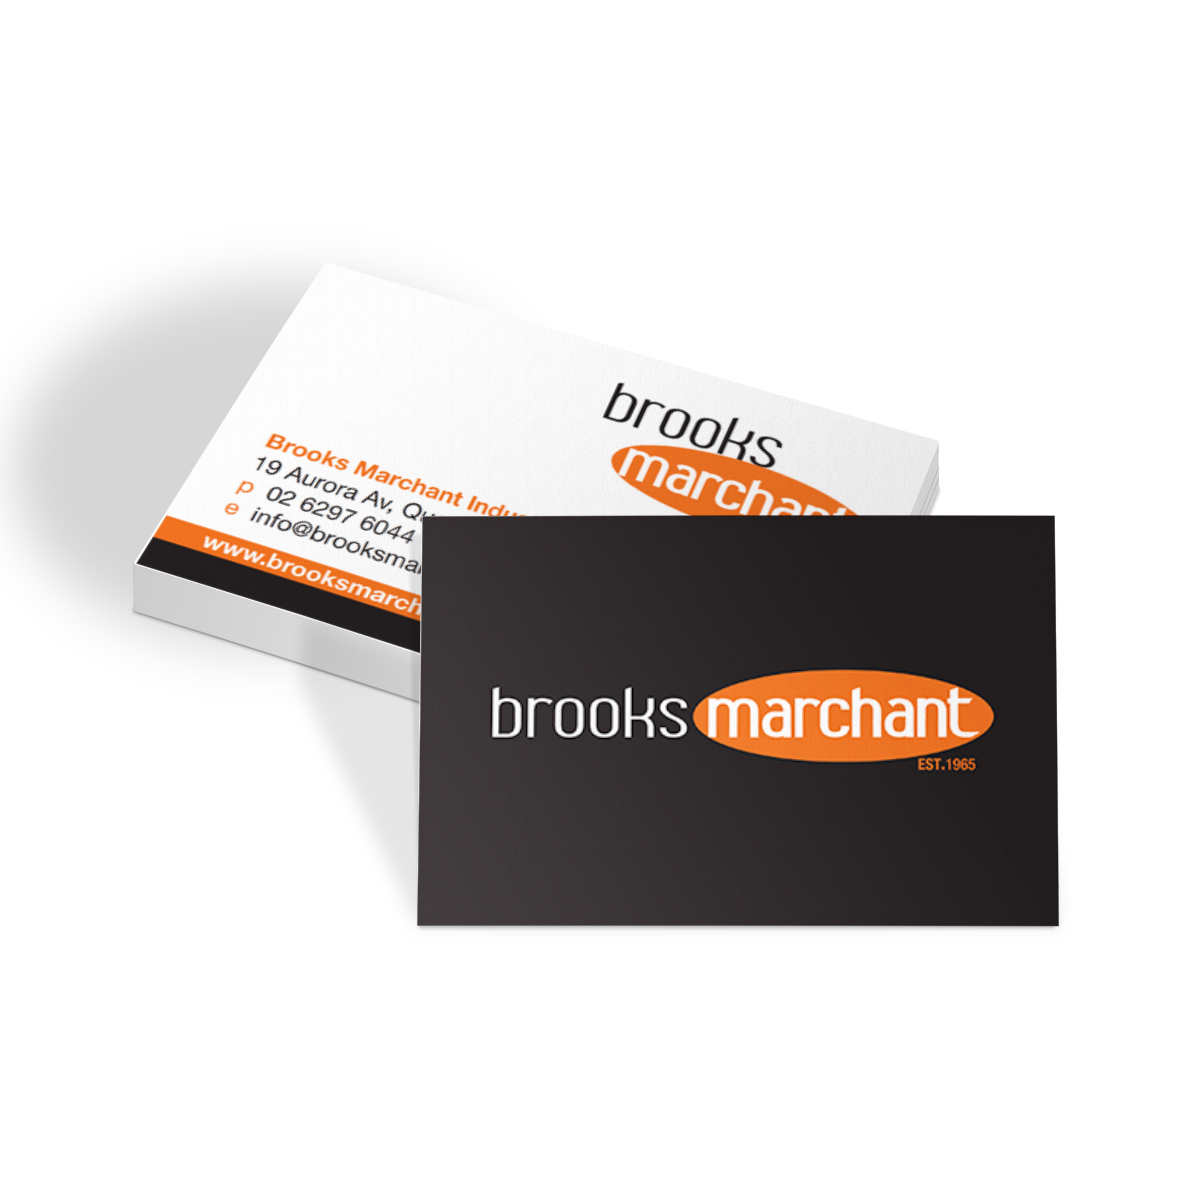 Brooks Marchant Business Cards